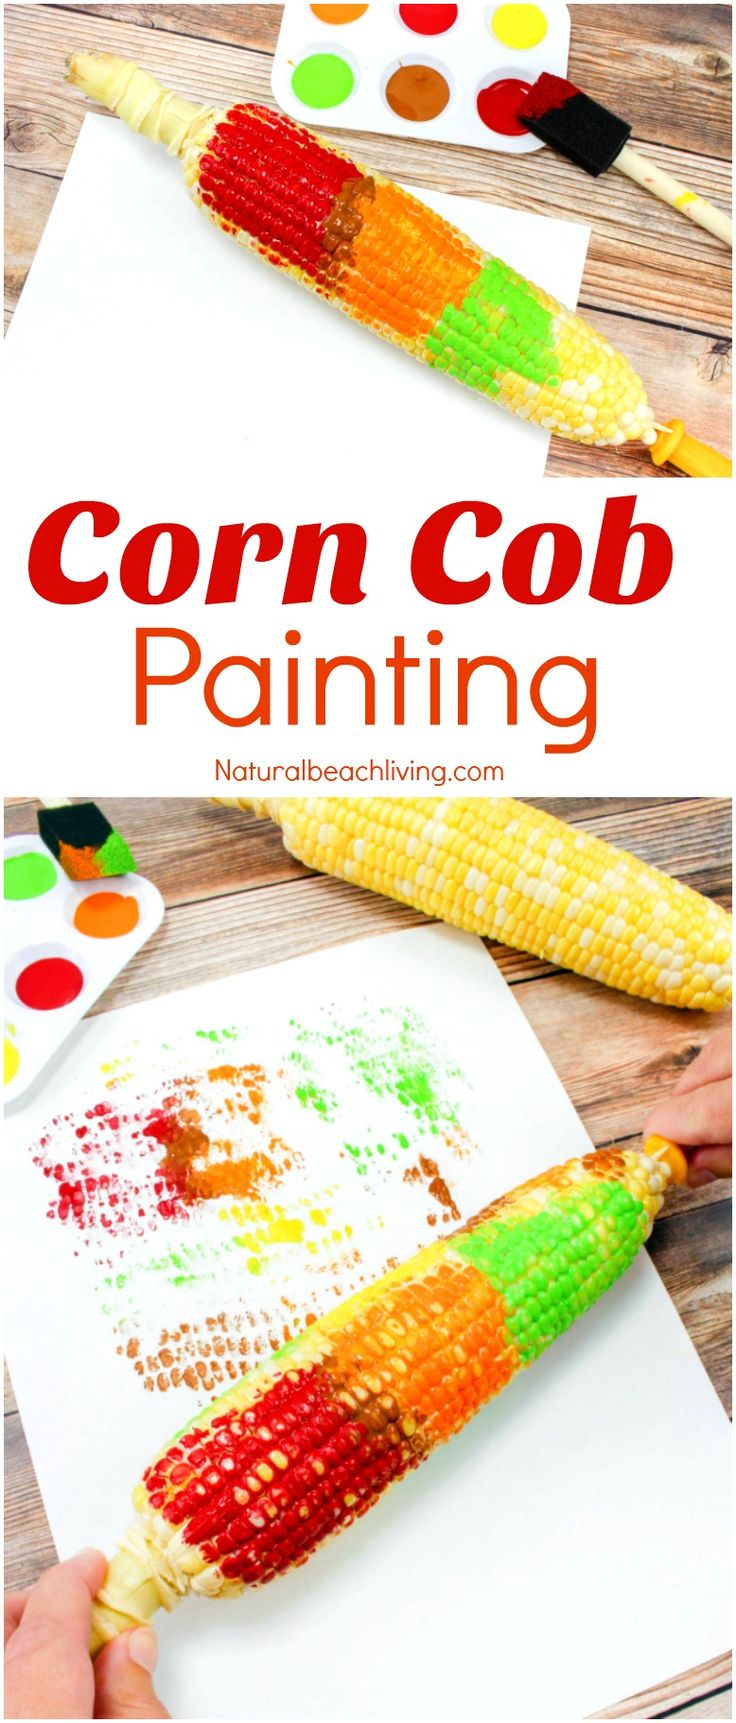 Fun Corn Cob Craft Painting for Kids, Thanksgiving Crafts, Thanksgiving Arts Crafts, Corn Cob Painting, Easy Fall Crafts for preschoolers, Farm Preschool Theme activities, Easy Thanksgiving Crafts Kids Love #Thanksgiving #Crafts #Fallcrafts